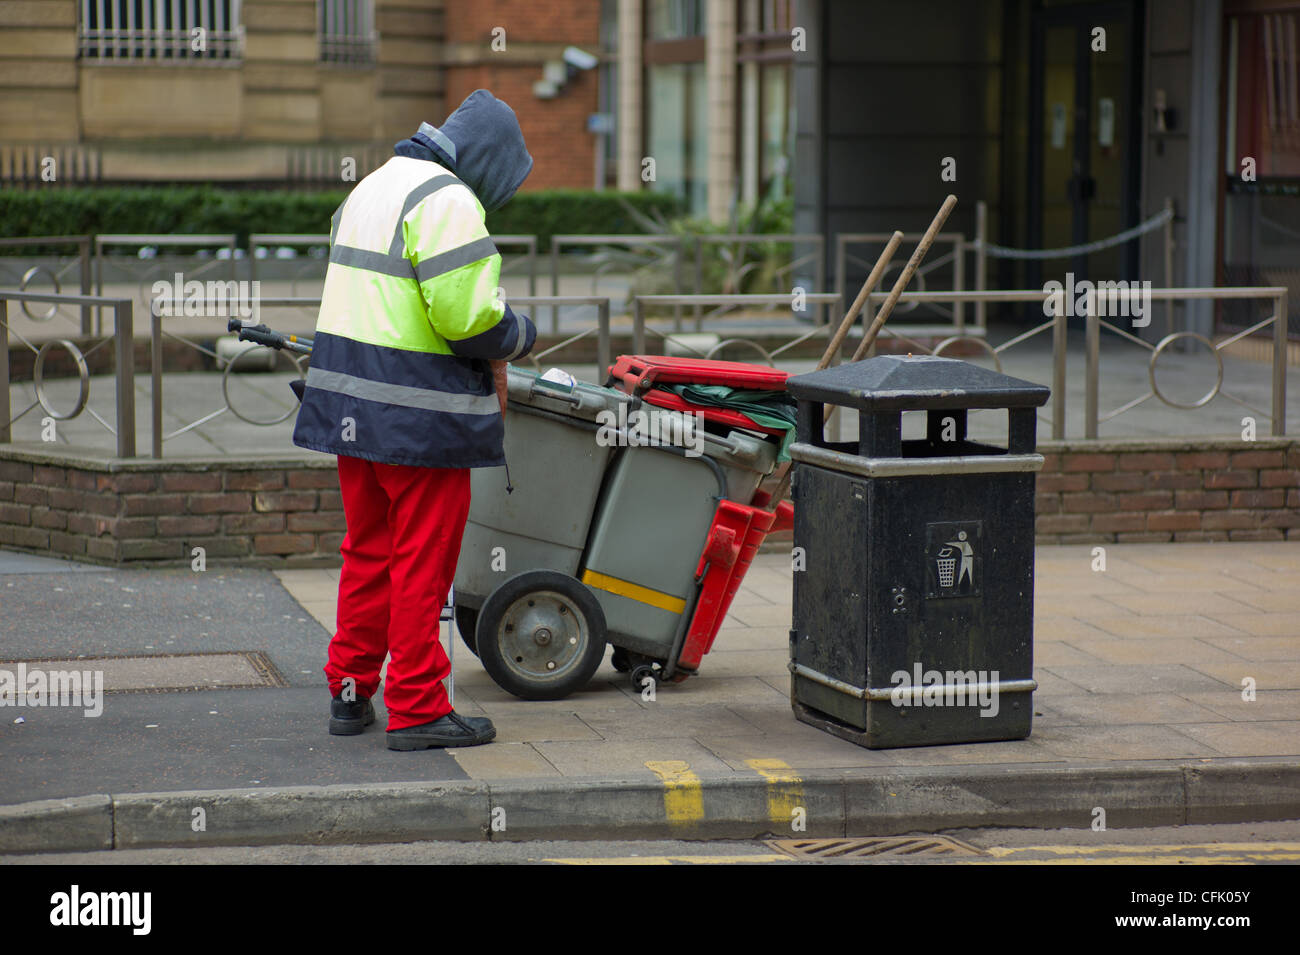 Street Cleaner pausing next to rubbish bin in Manchester City Centre, UK - Stock Image